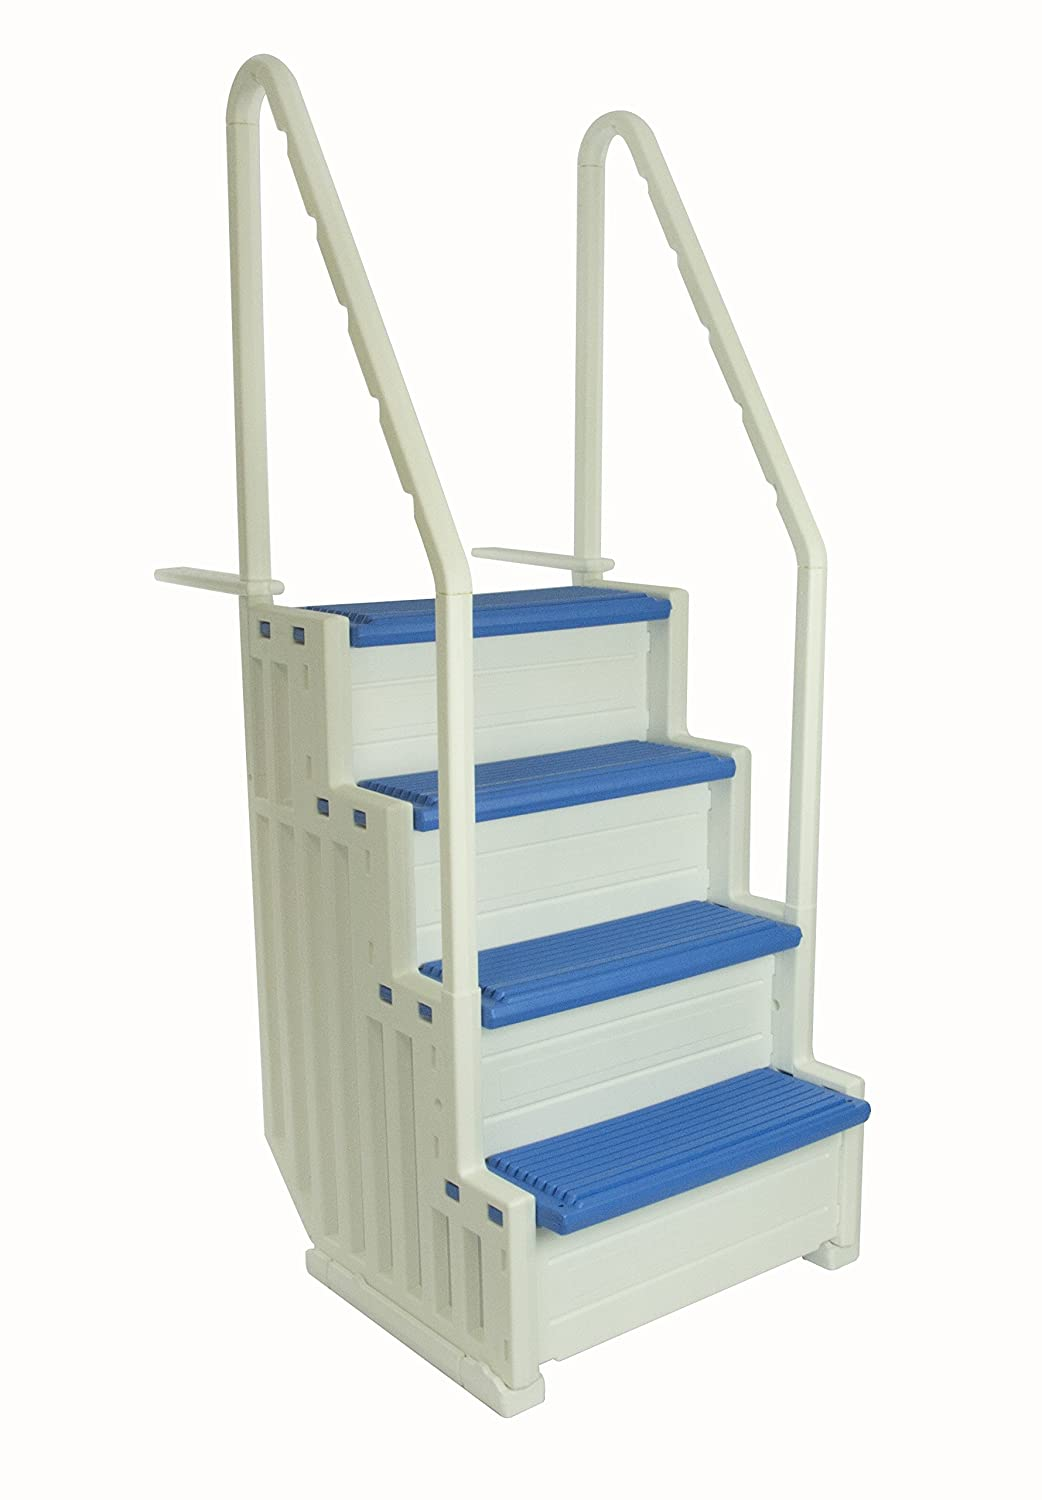 Confer Plastics Above Ground Swimming Pool Ladder | Heavy Duty | White Frame With Blue Steps | Deck Height Up To 60 Inches | Makes Getting In & Out Of Pool A Lot Easier